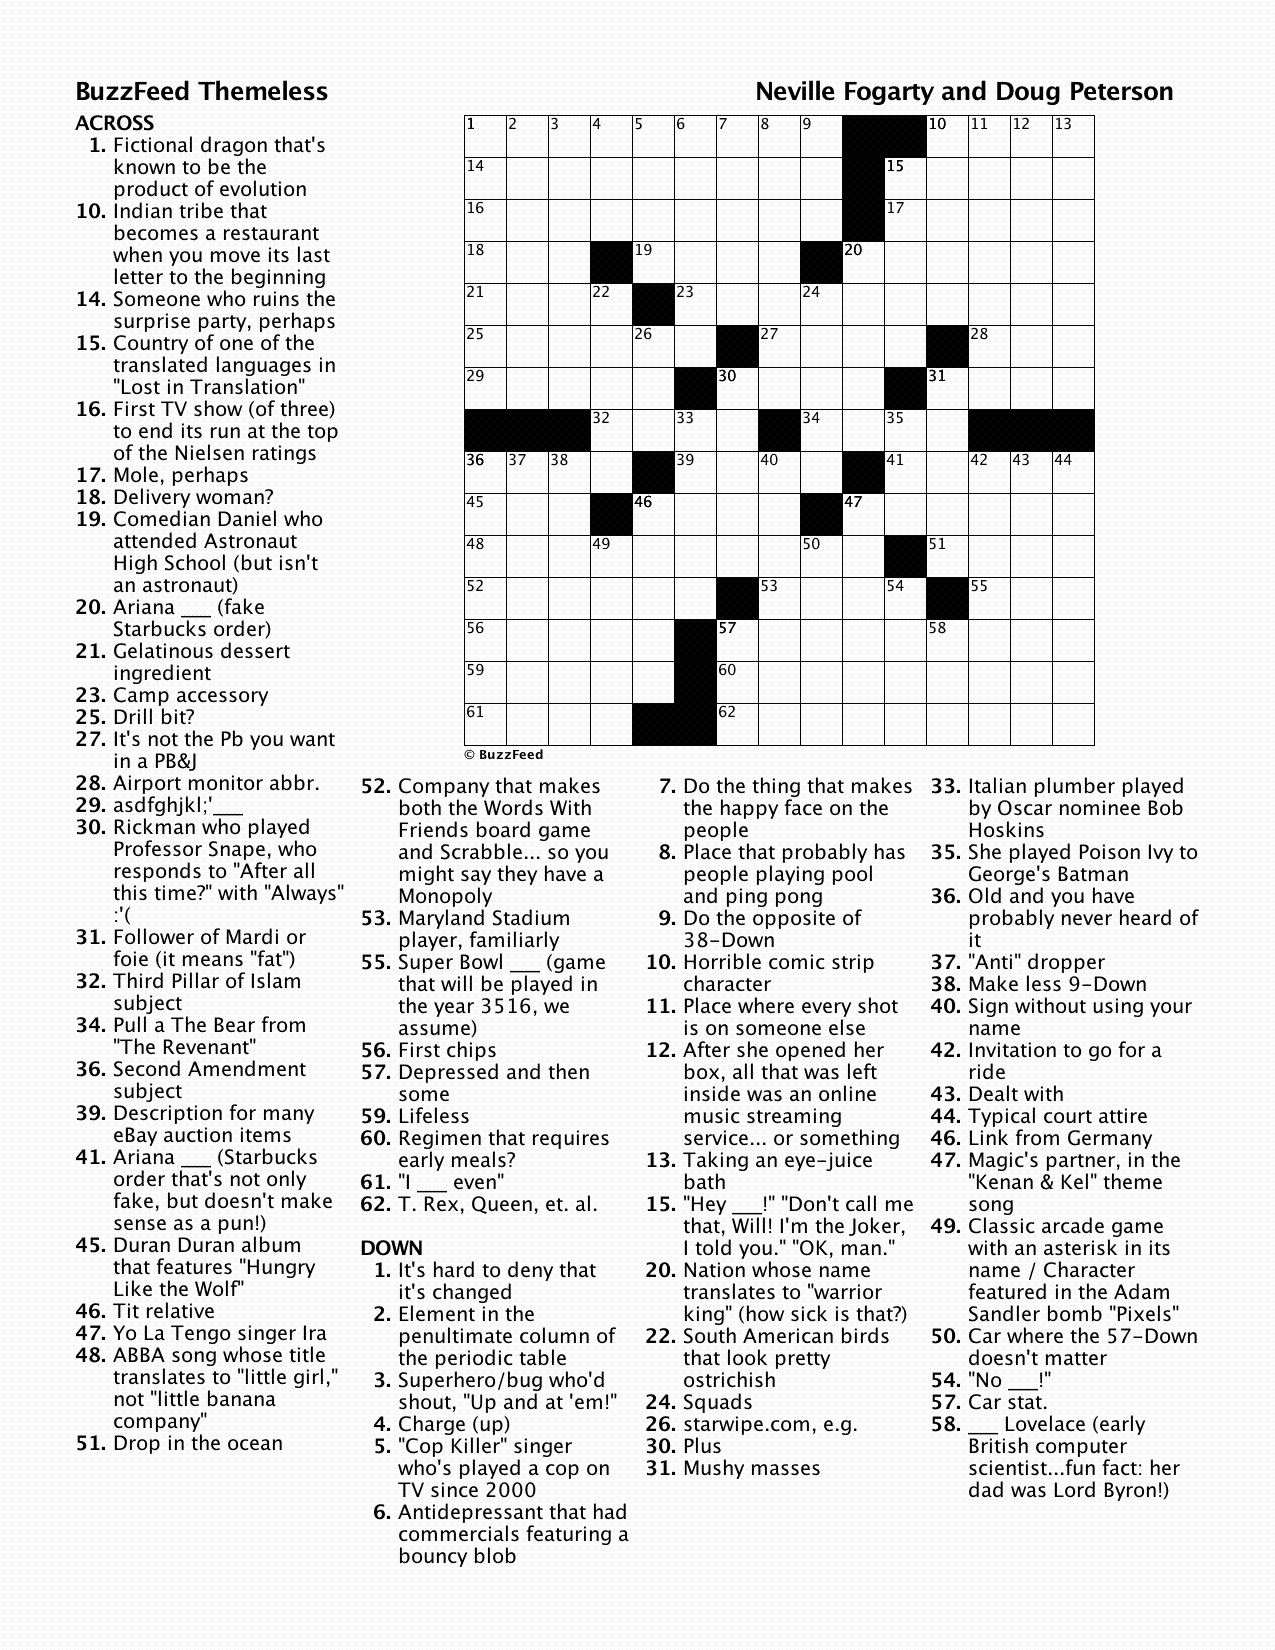 BuzzFeed Crossword: Freestyle Challenge